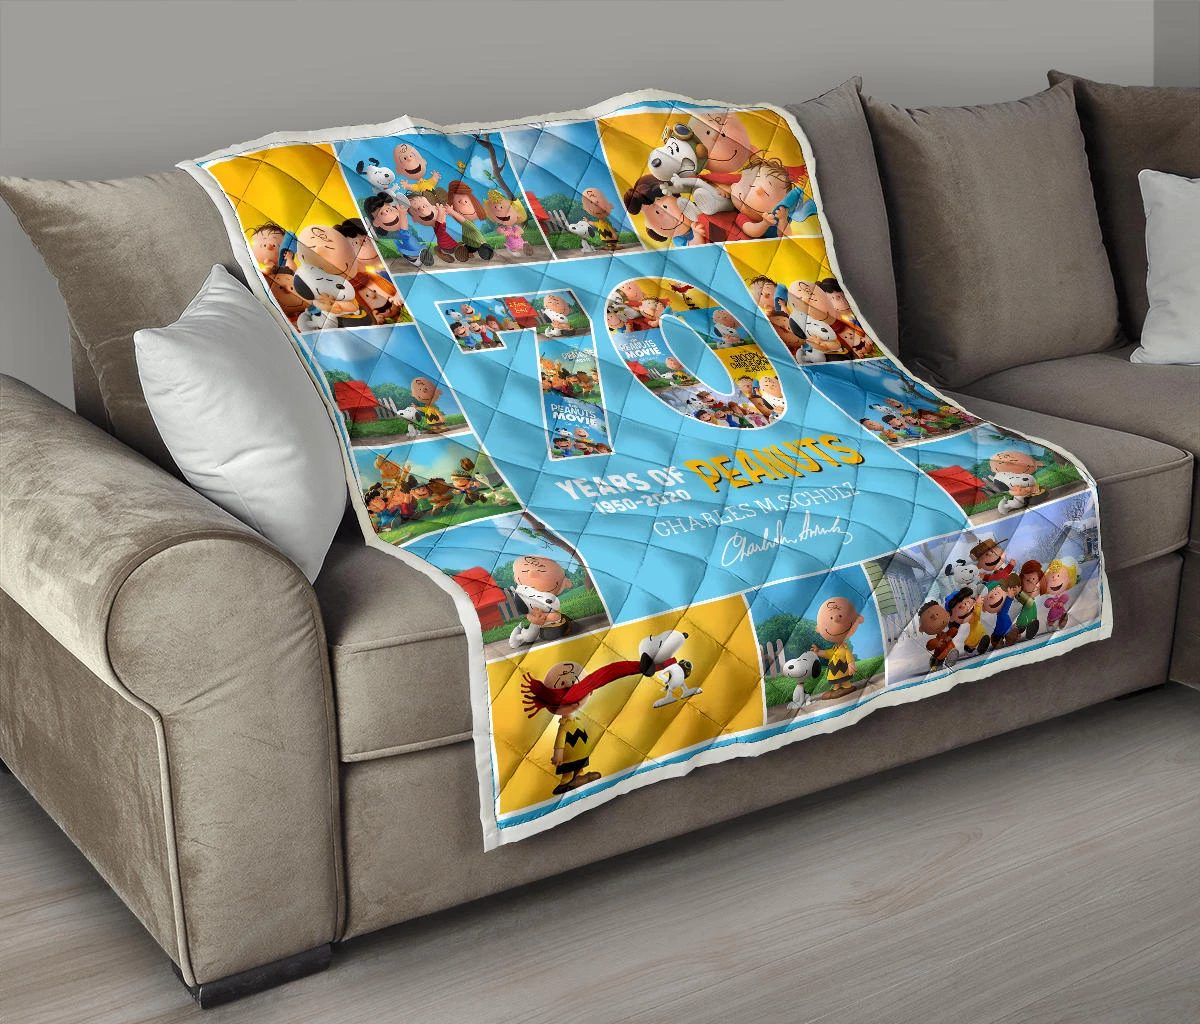 70 years of peanuts charles m schulz quilt 4